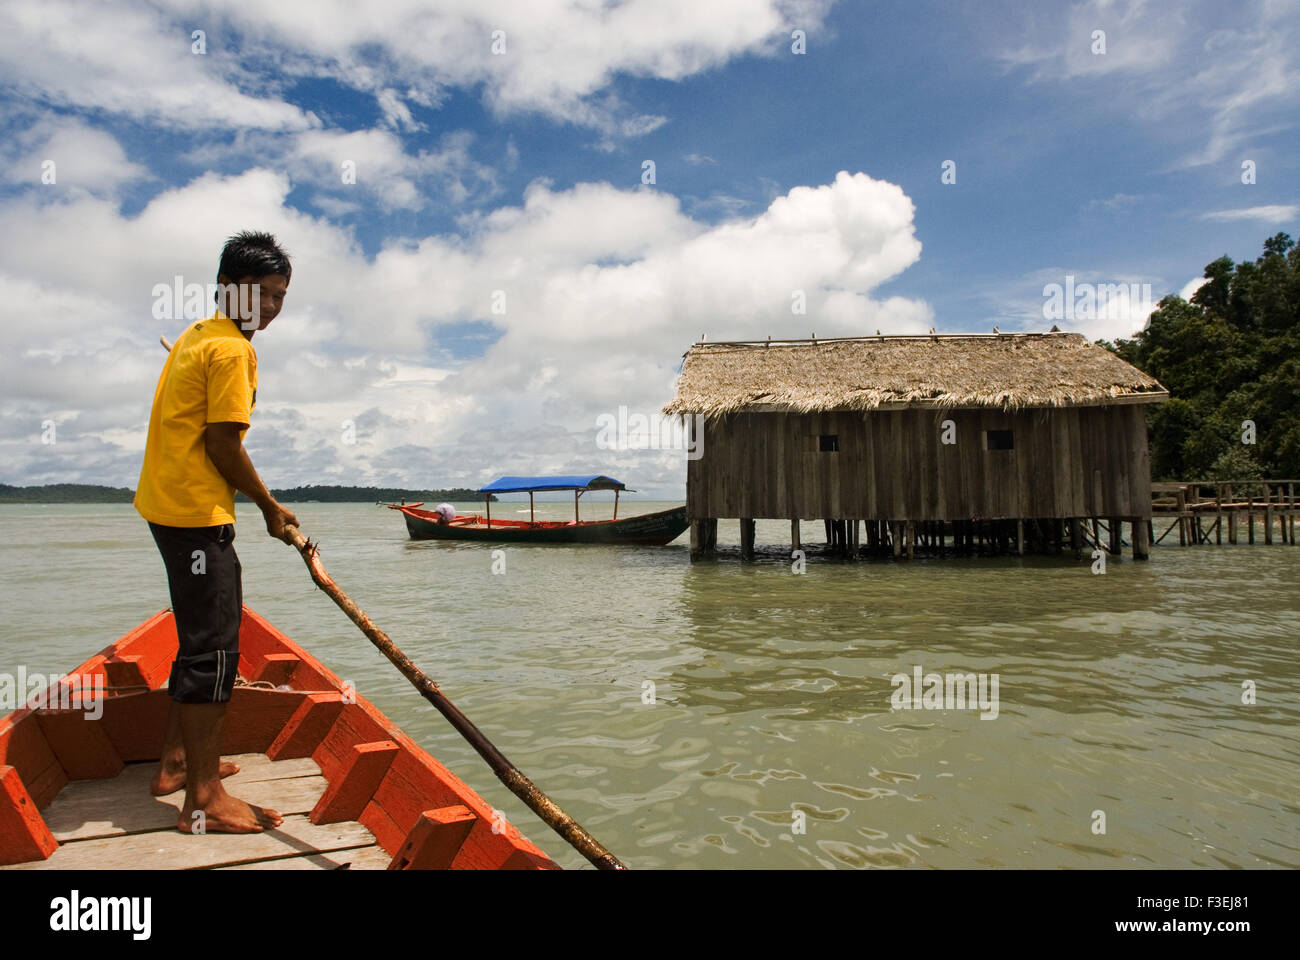 Hut in the Ream National Park. A red boat approaches. Ream National Park is 18 kilometres from downtown Sihanoukville, towards P Stock Photo